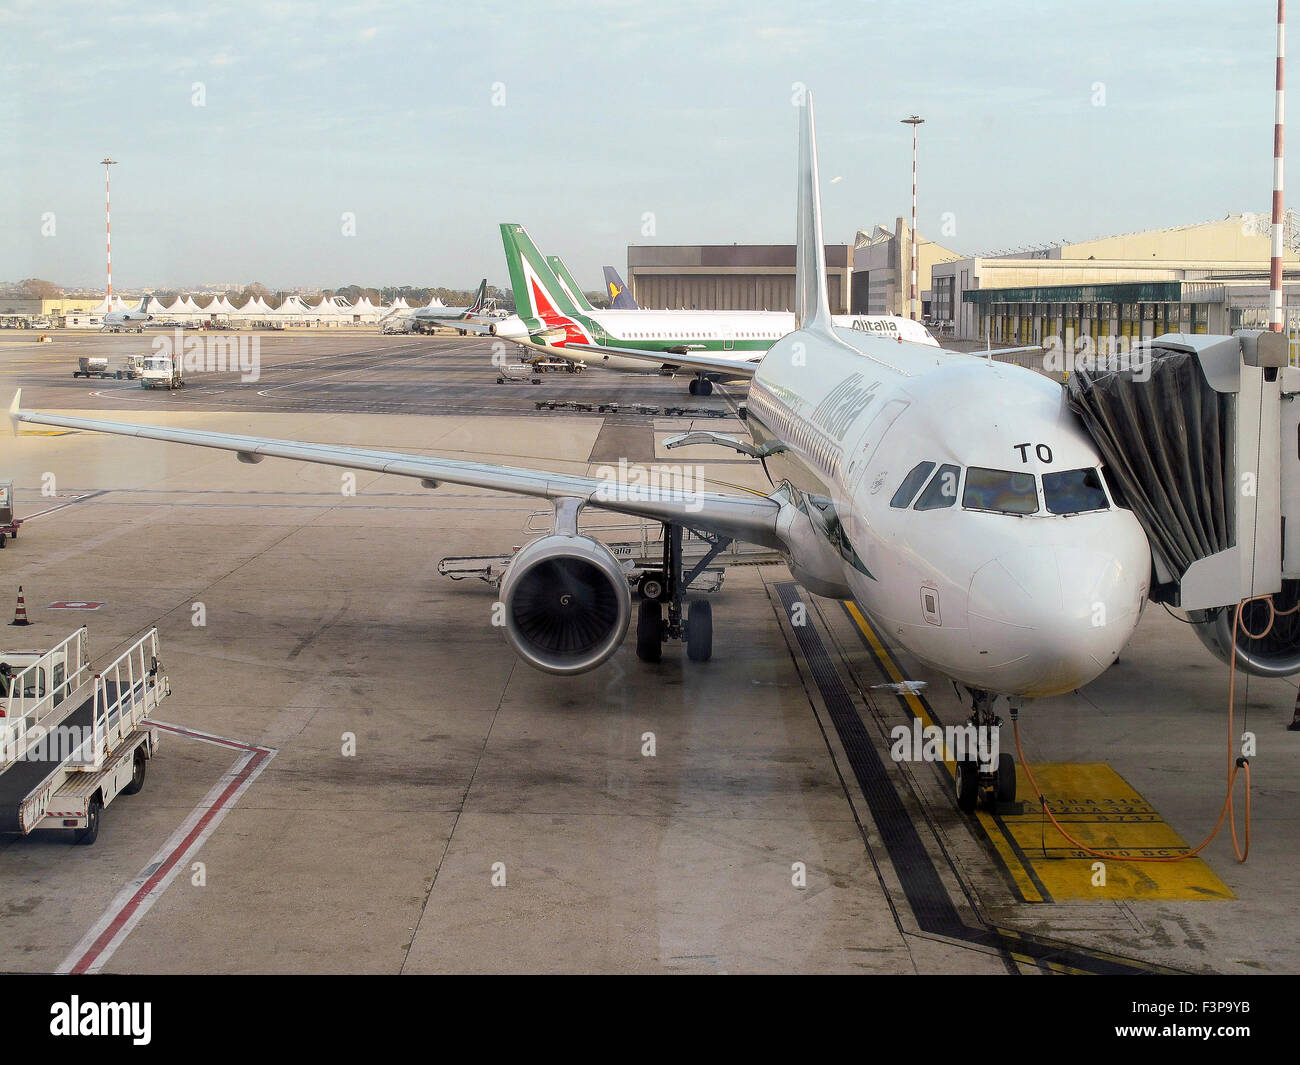 Alitalia, Passenger plane on the ground at at Linate airport, Milan, Italy - Stock Image